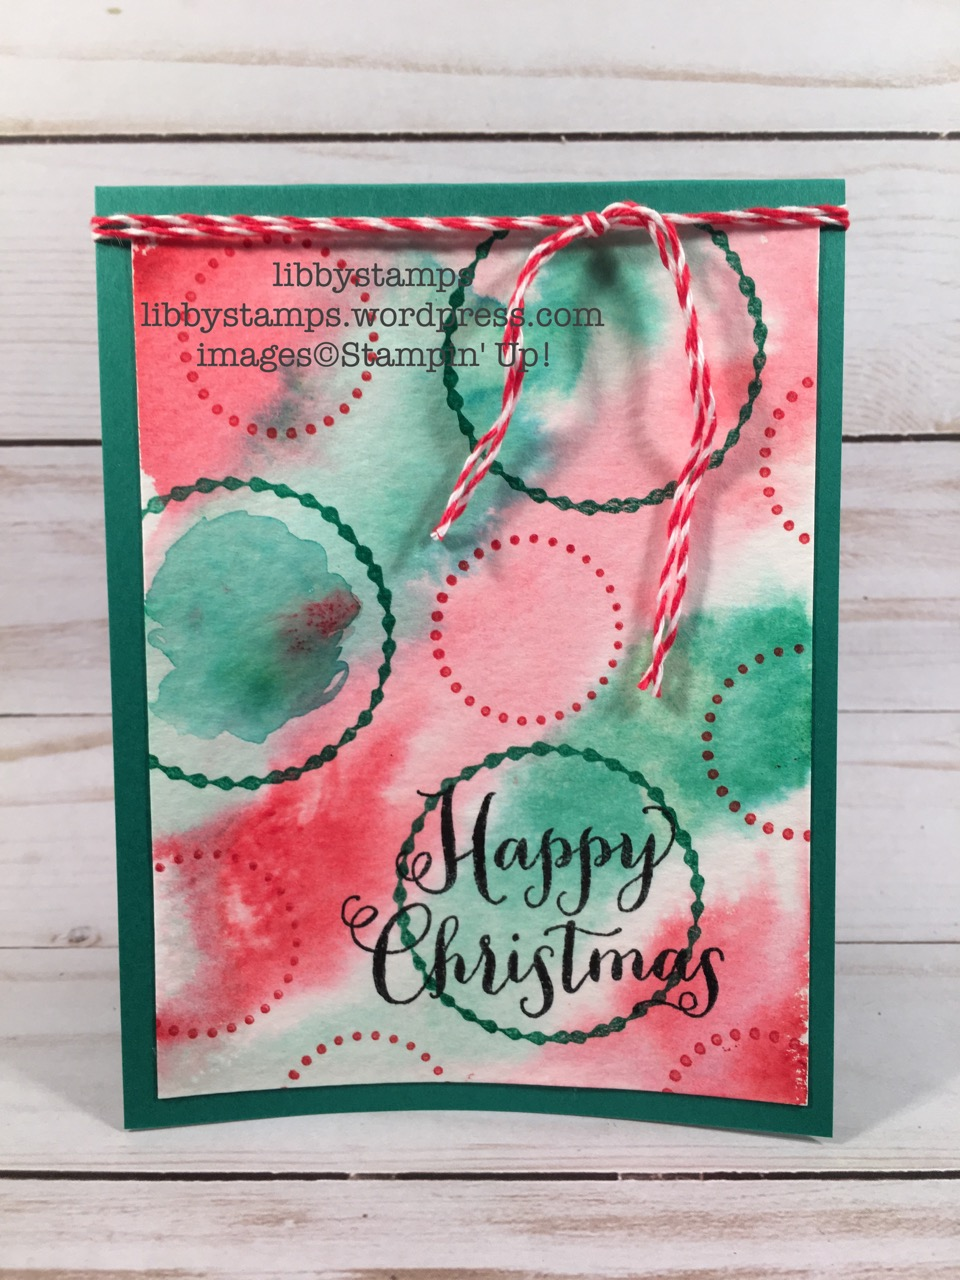 libbystamps, stampin up, Eastern Beauty, Oh What Fun, watercolor card, Christmas Card, WWC